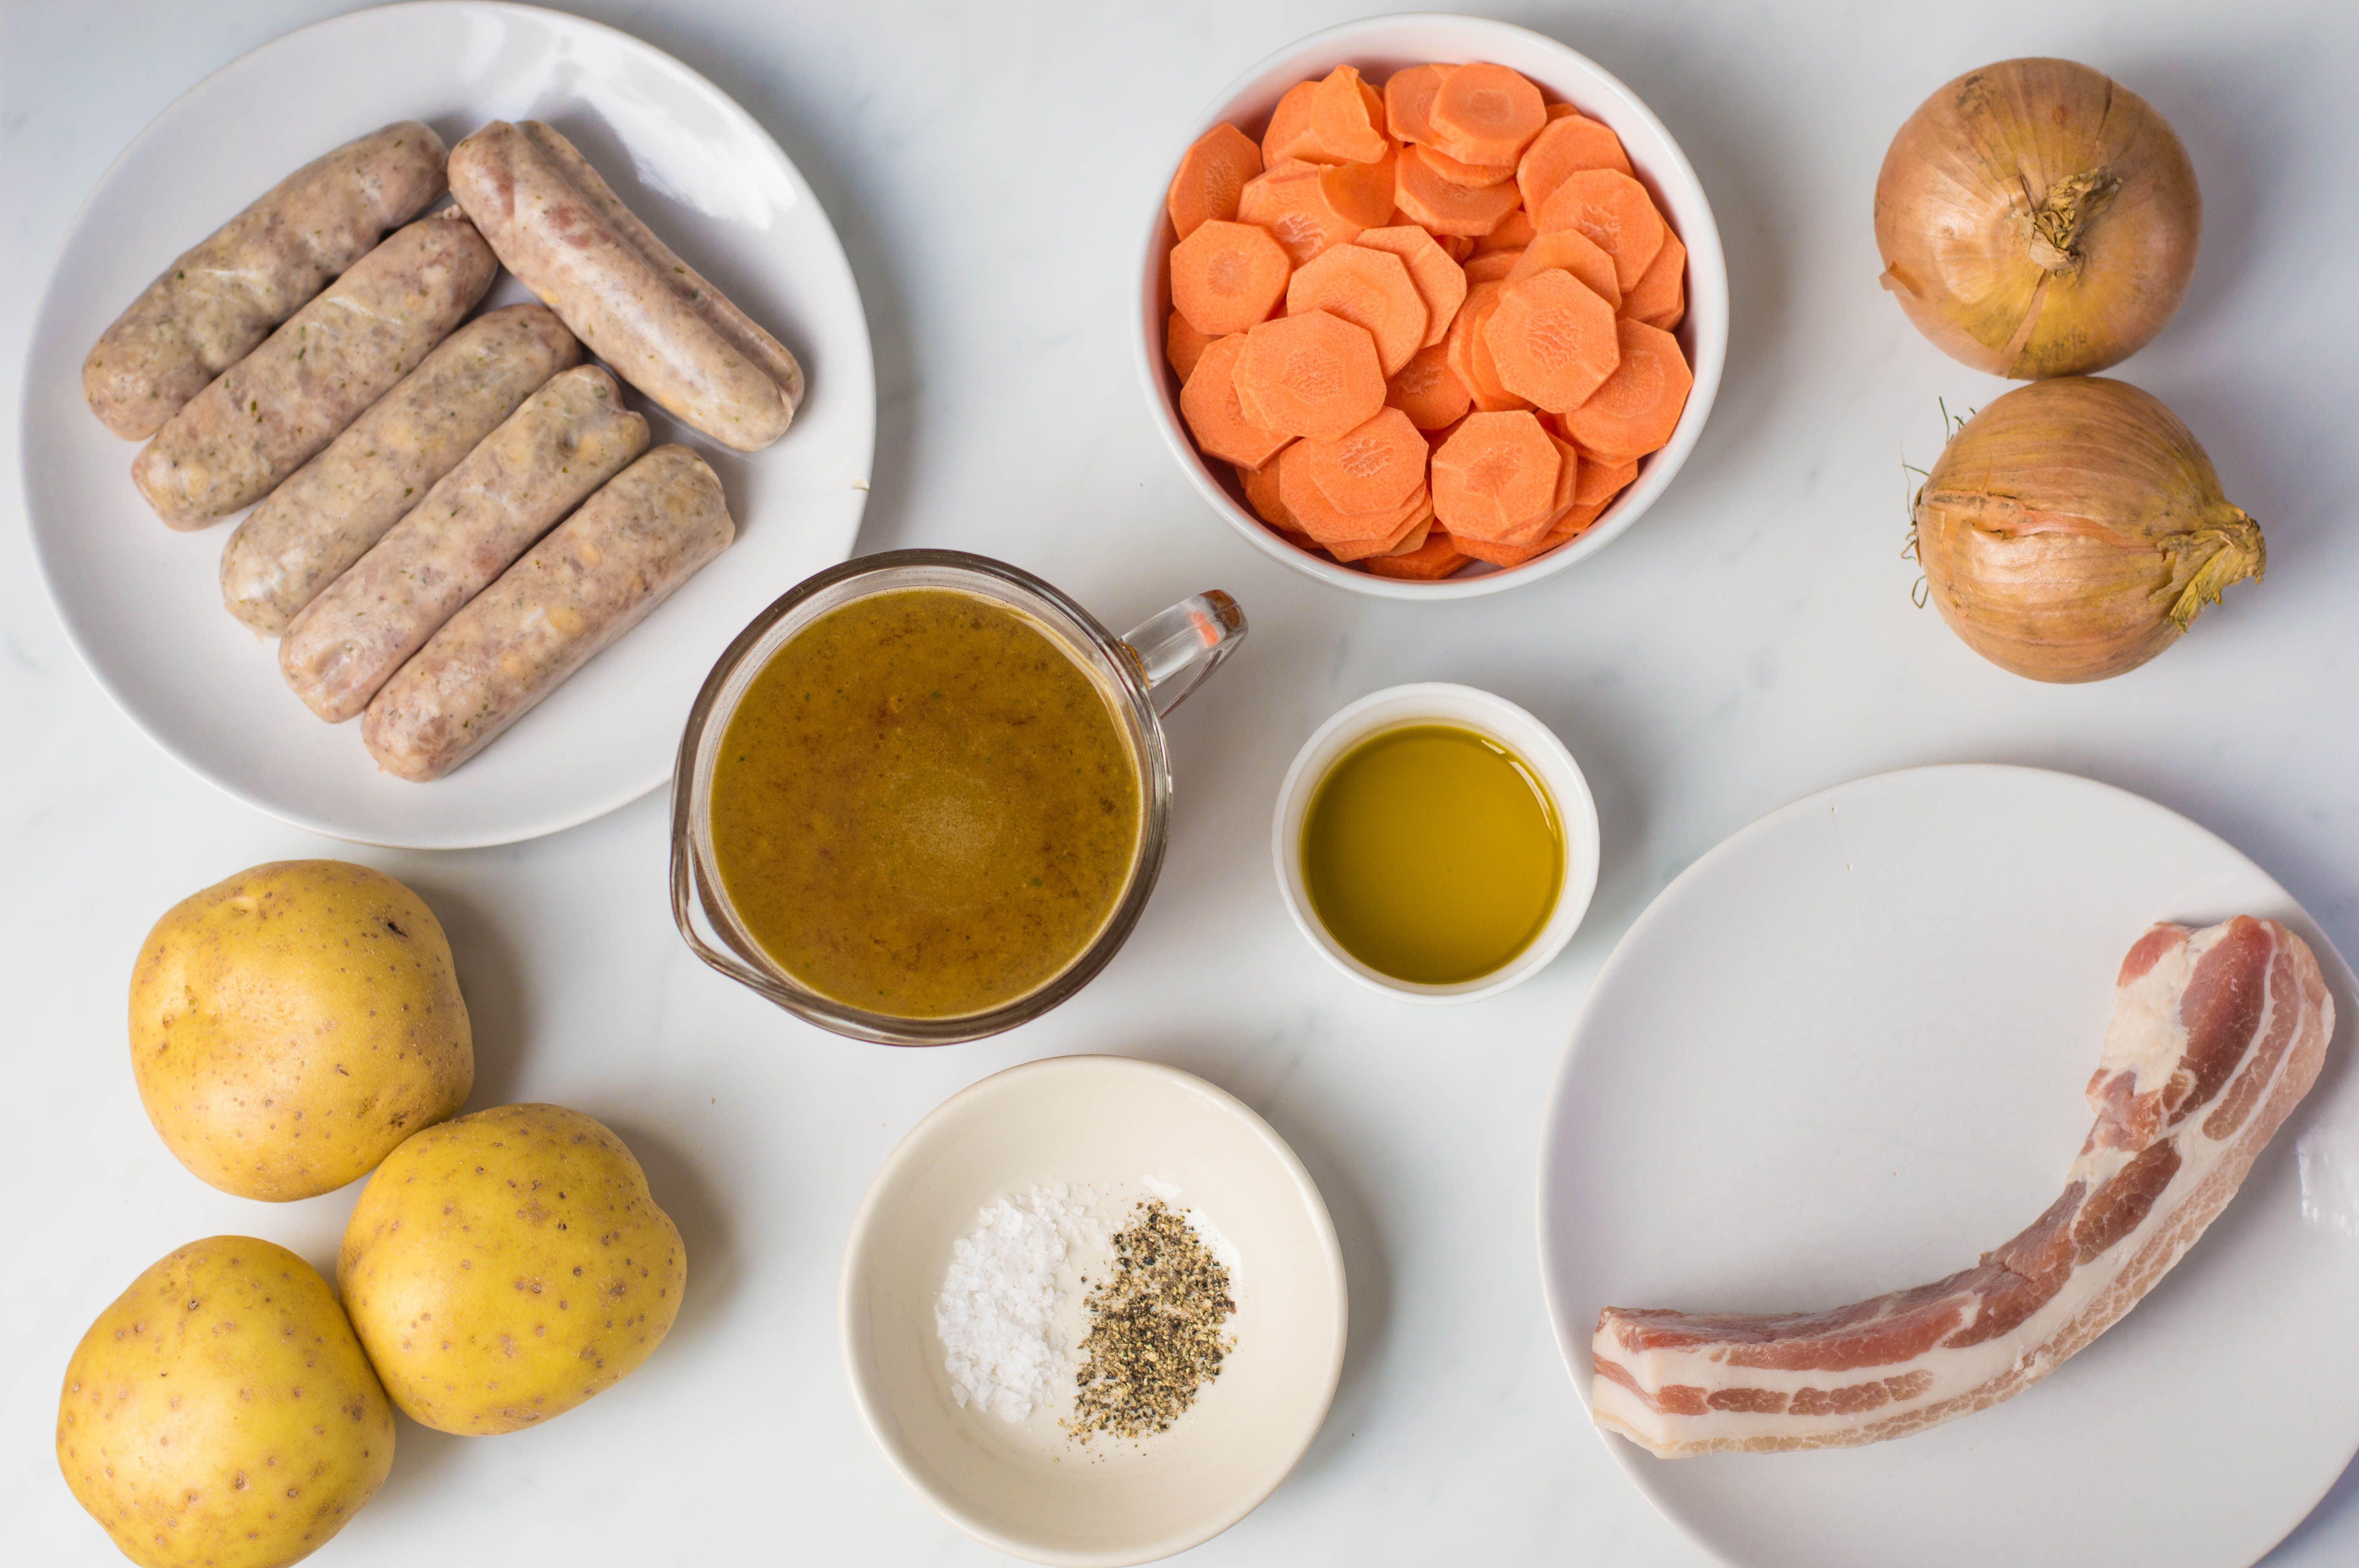 Ingredients for Dubling Coddle